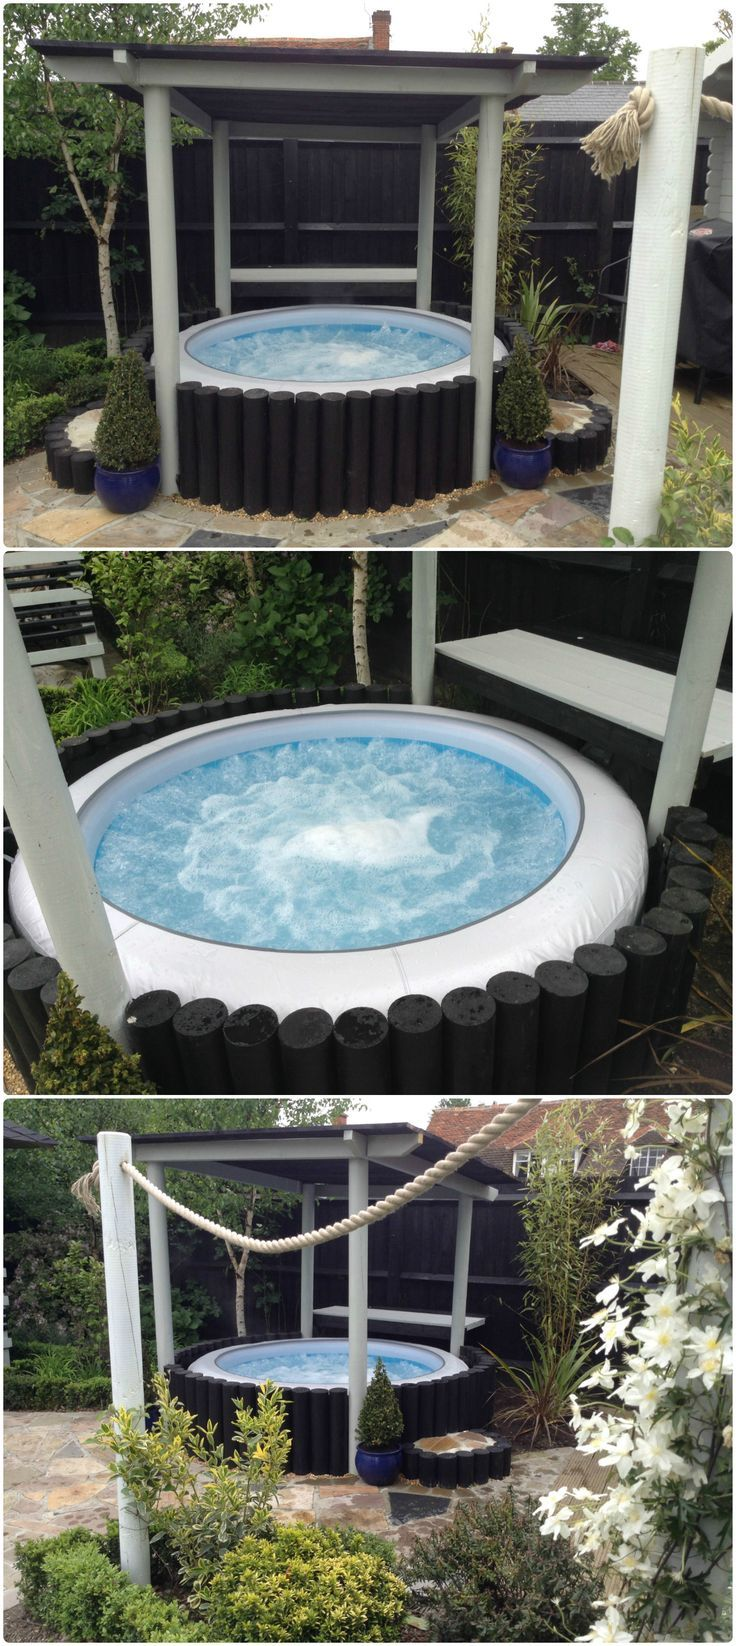 Inflatable Pool Ideas layout backyard 1 kid pool 2 medium pools 1 large pool spiral Find This Pin And More On Pool Options Inflatable Hot Tub Surround Idea